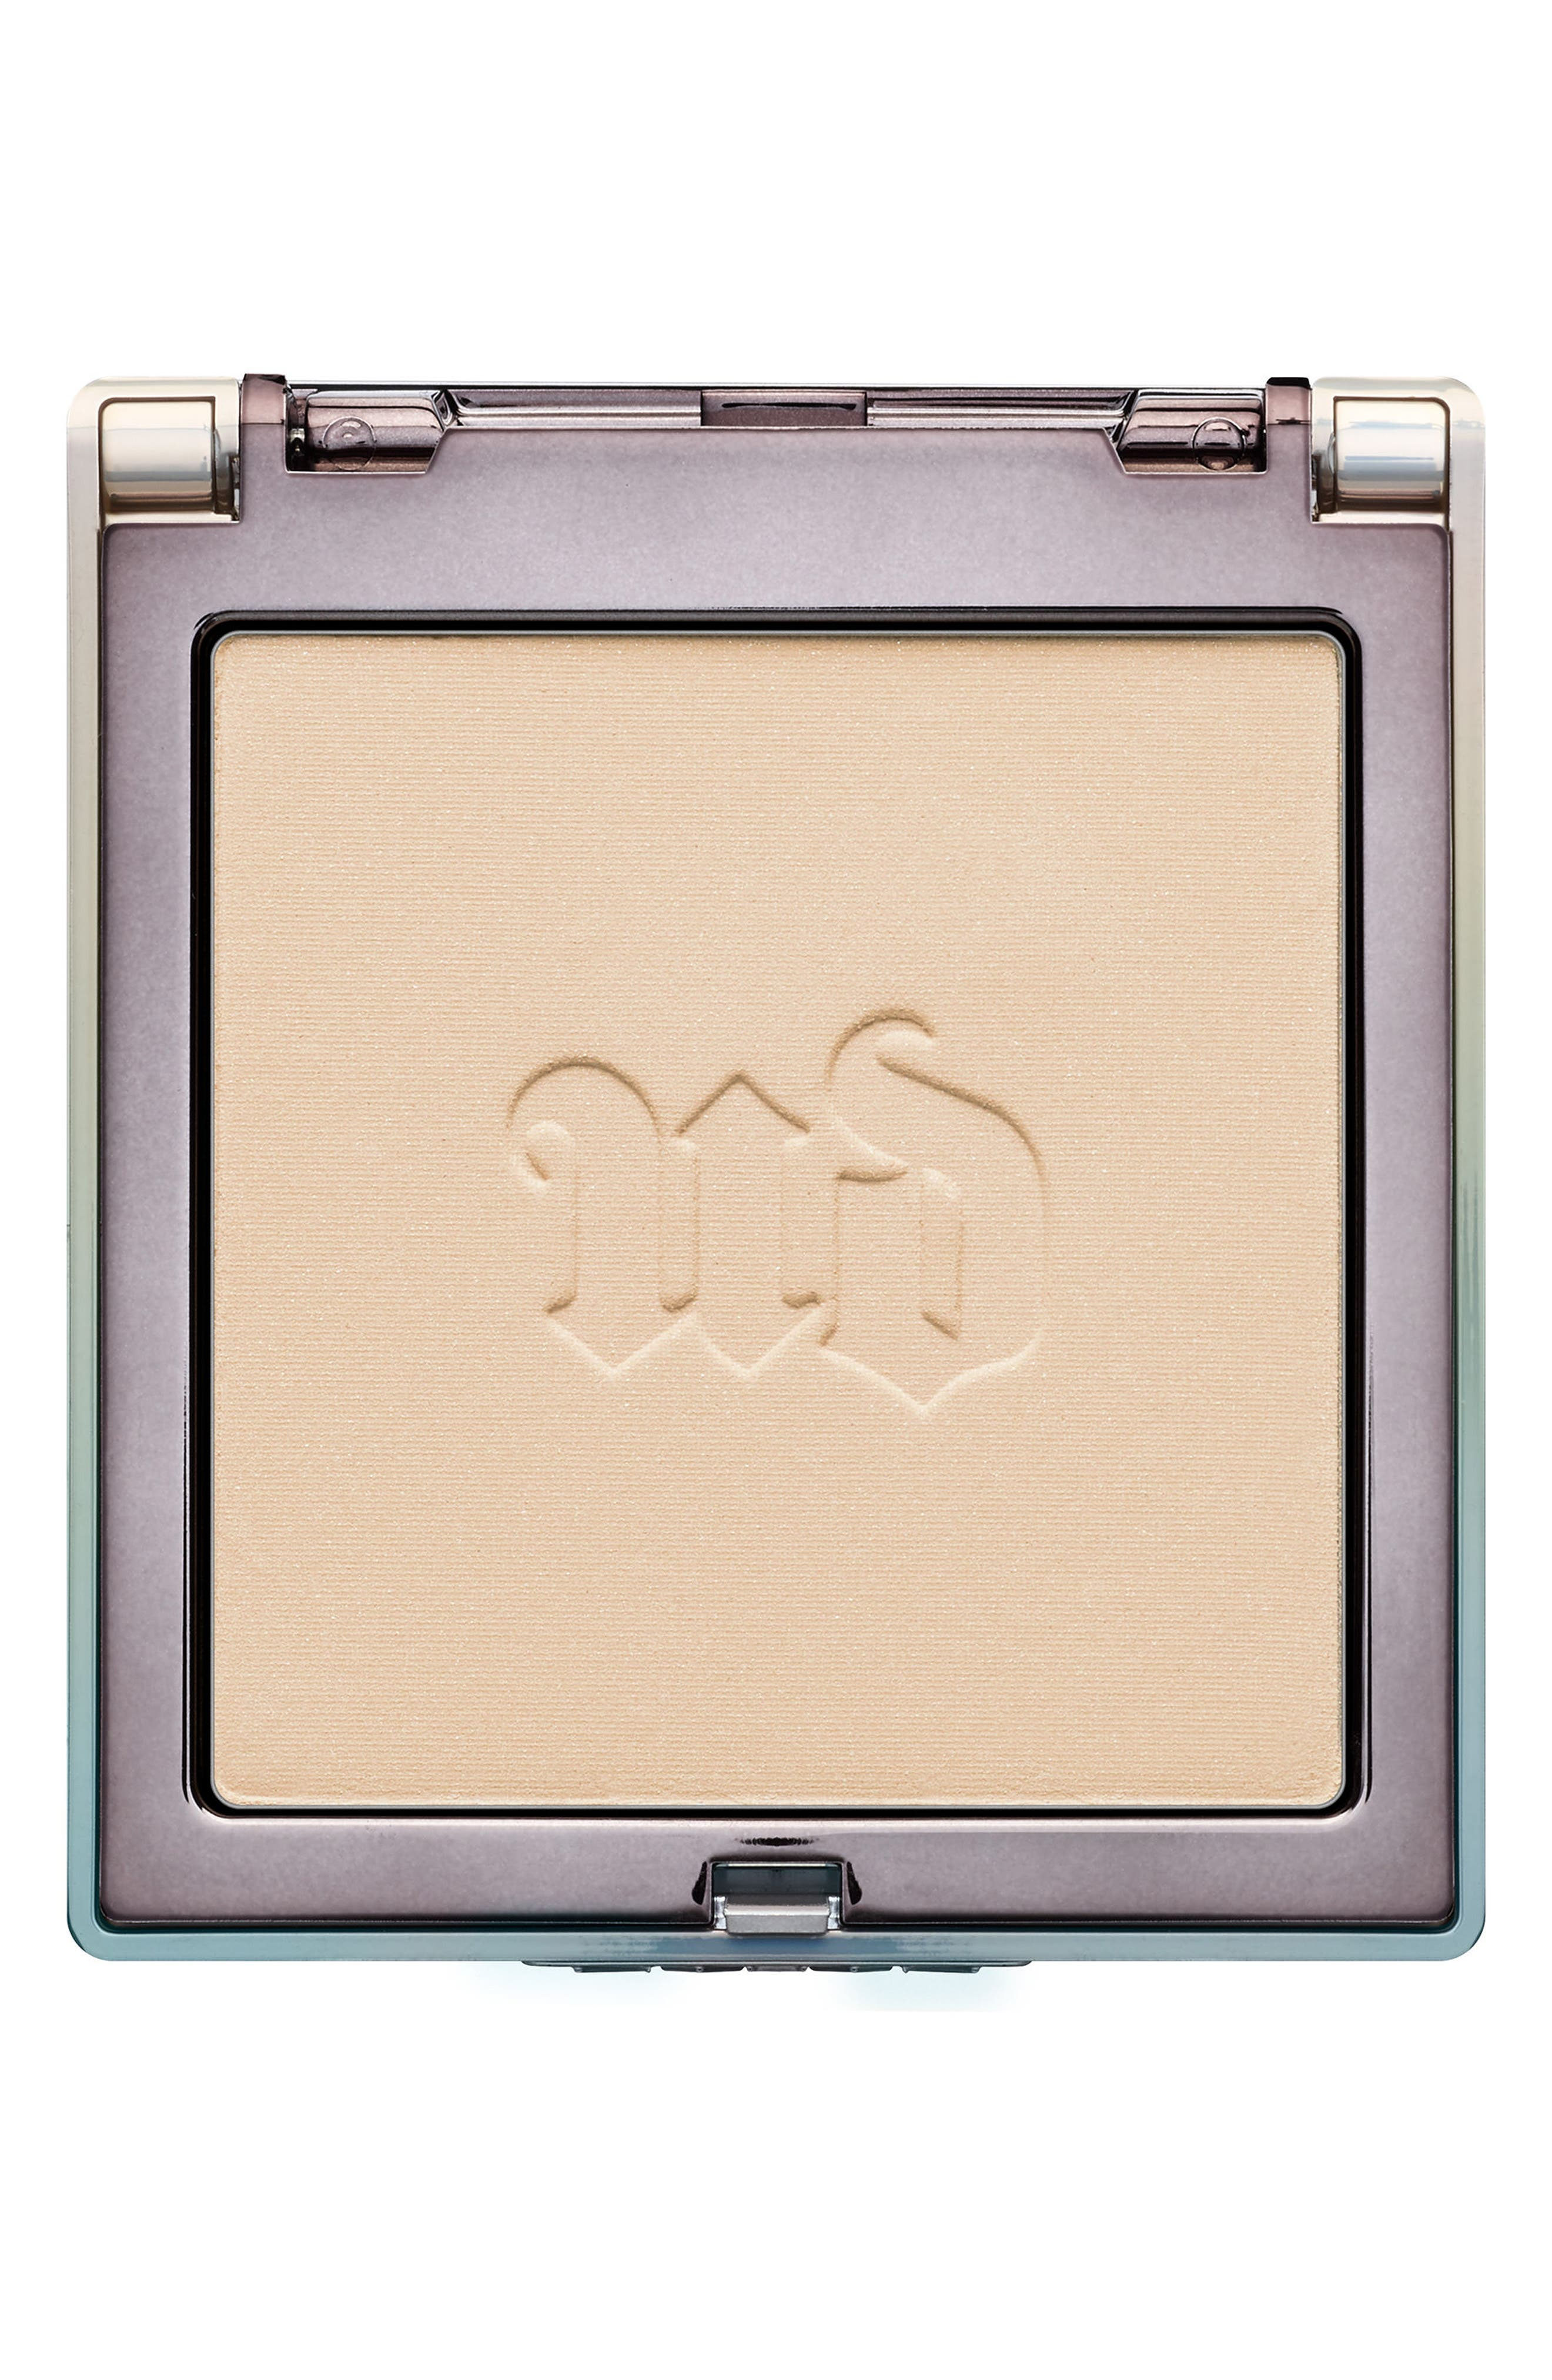 Main Image - Urban Decay Naked Skin The Illuminizer Translucent Pressed Beauty Powder